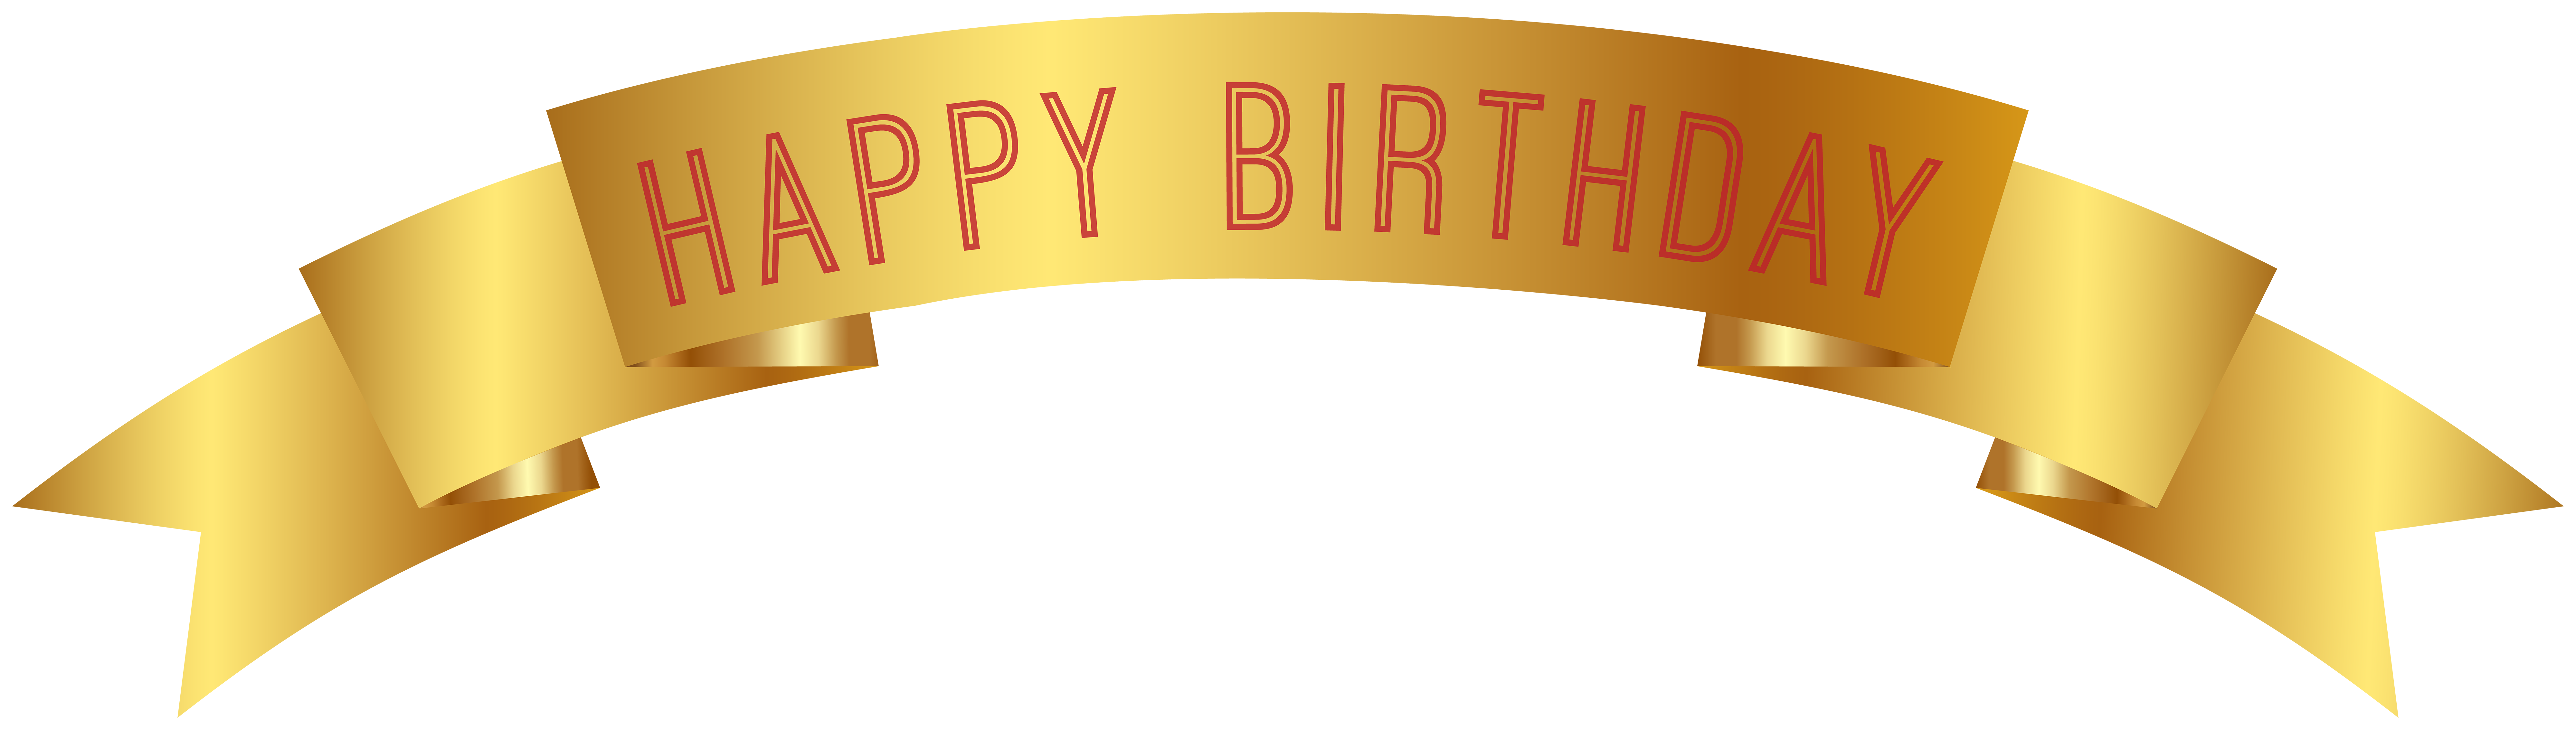 Happy birthday banners clipart png library Happy birthday banner clip art clipart images gallery for free ... png library